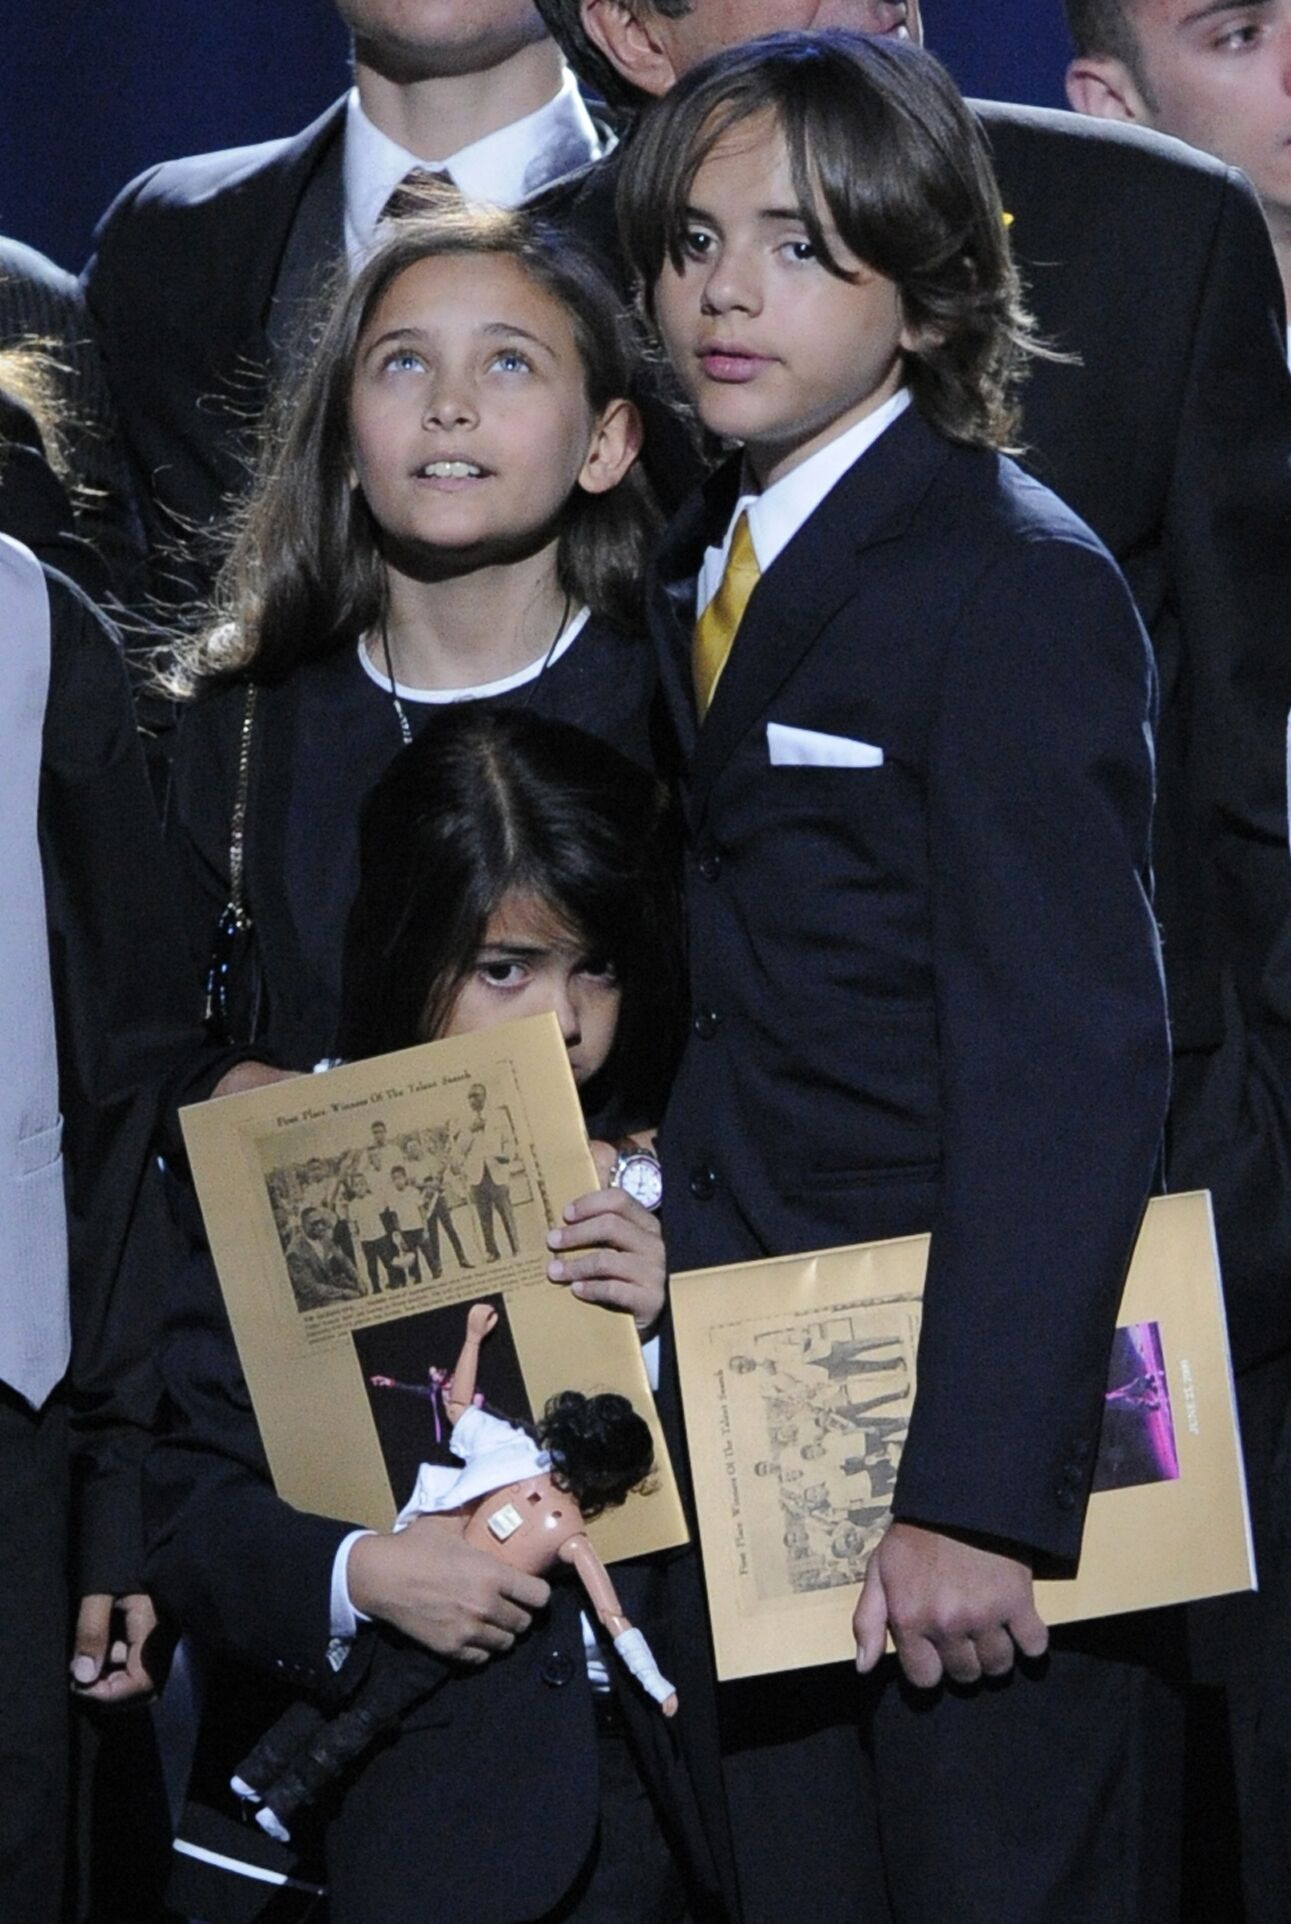 Paris Jackson, Prince Michael Jackson I and Prince Michael Jackson II onstage at the Michael Jackson public memorial service in July, 2009 | Source; Getty Images